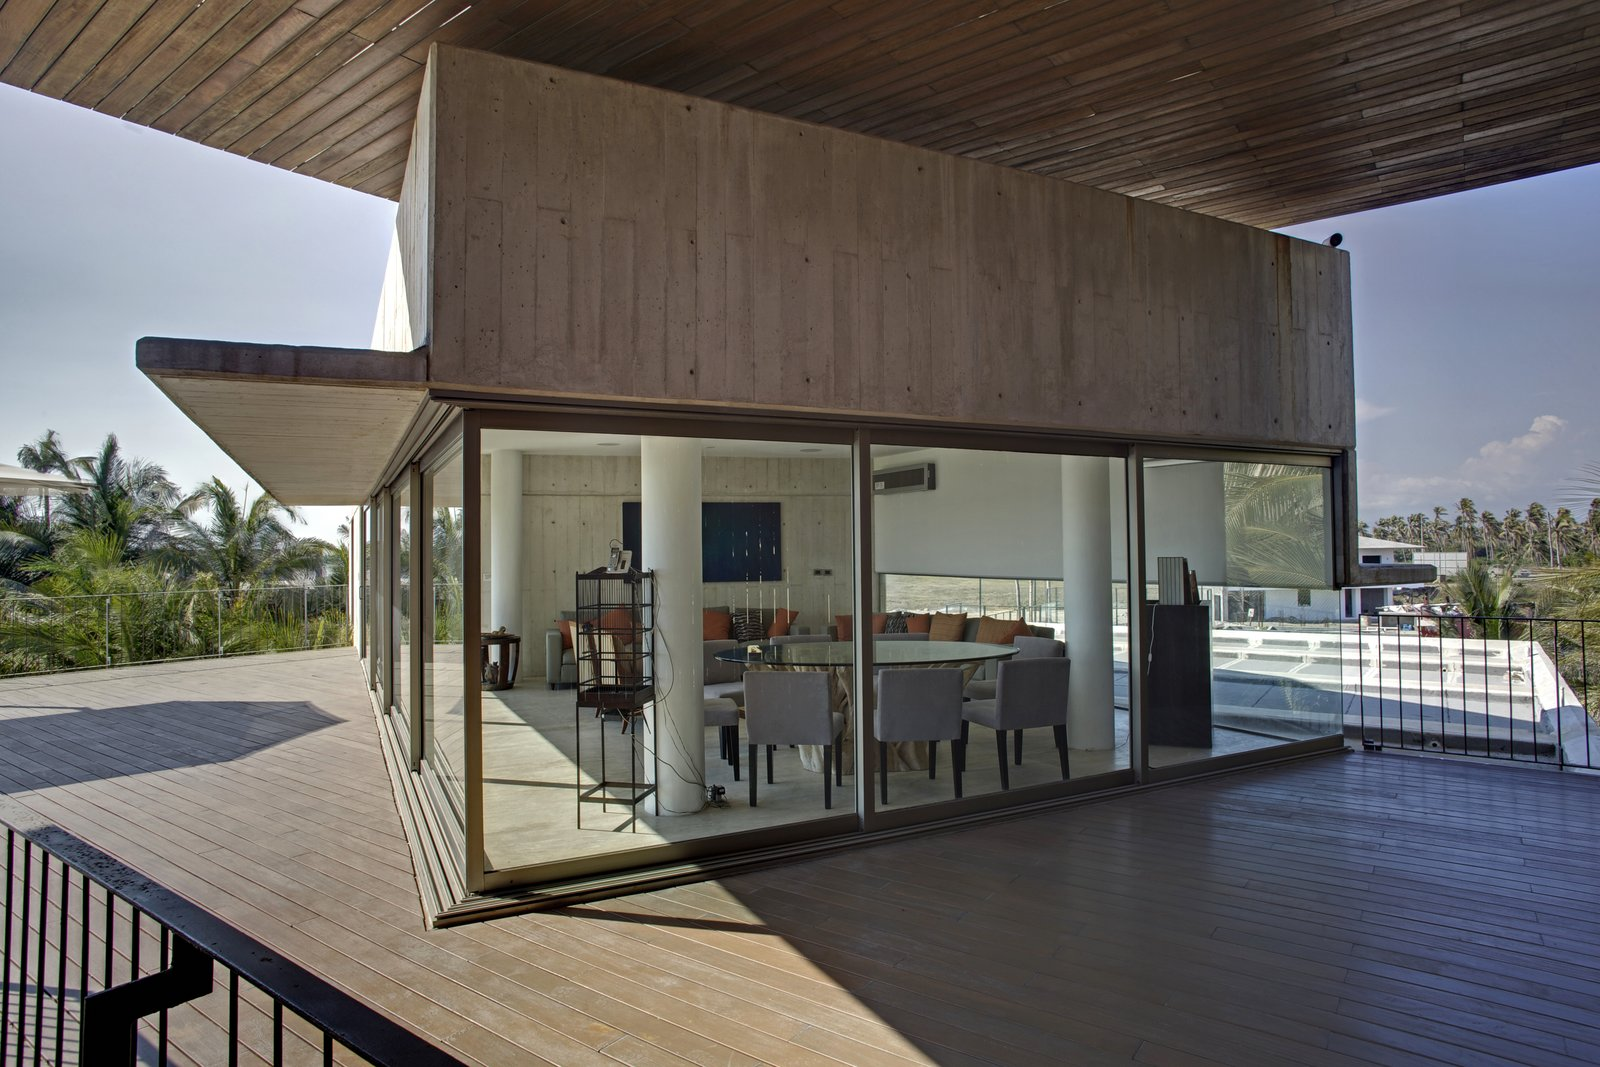 Terrace Level 3 Tagged: Living Room and Travertine Floor.  La Caracola Beach House by PAUL CREMOUX studio